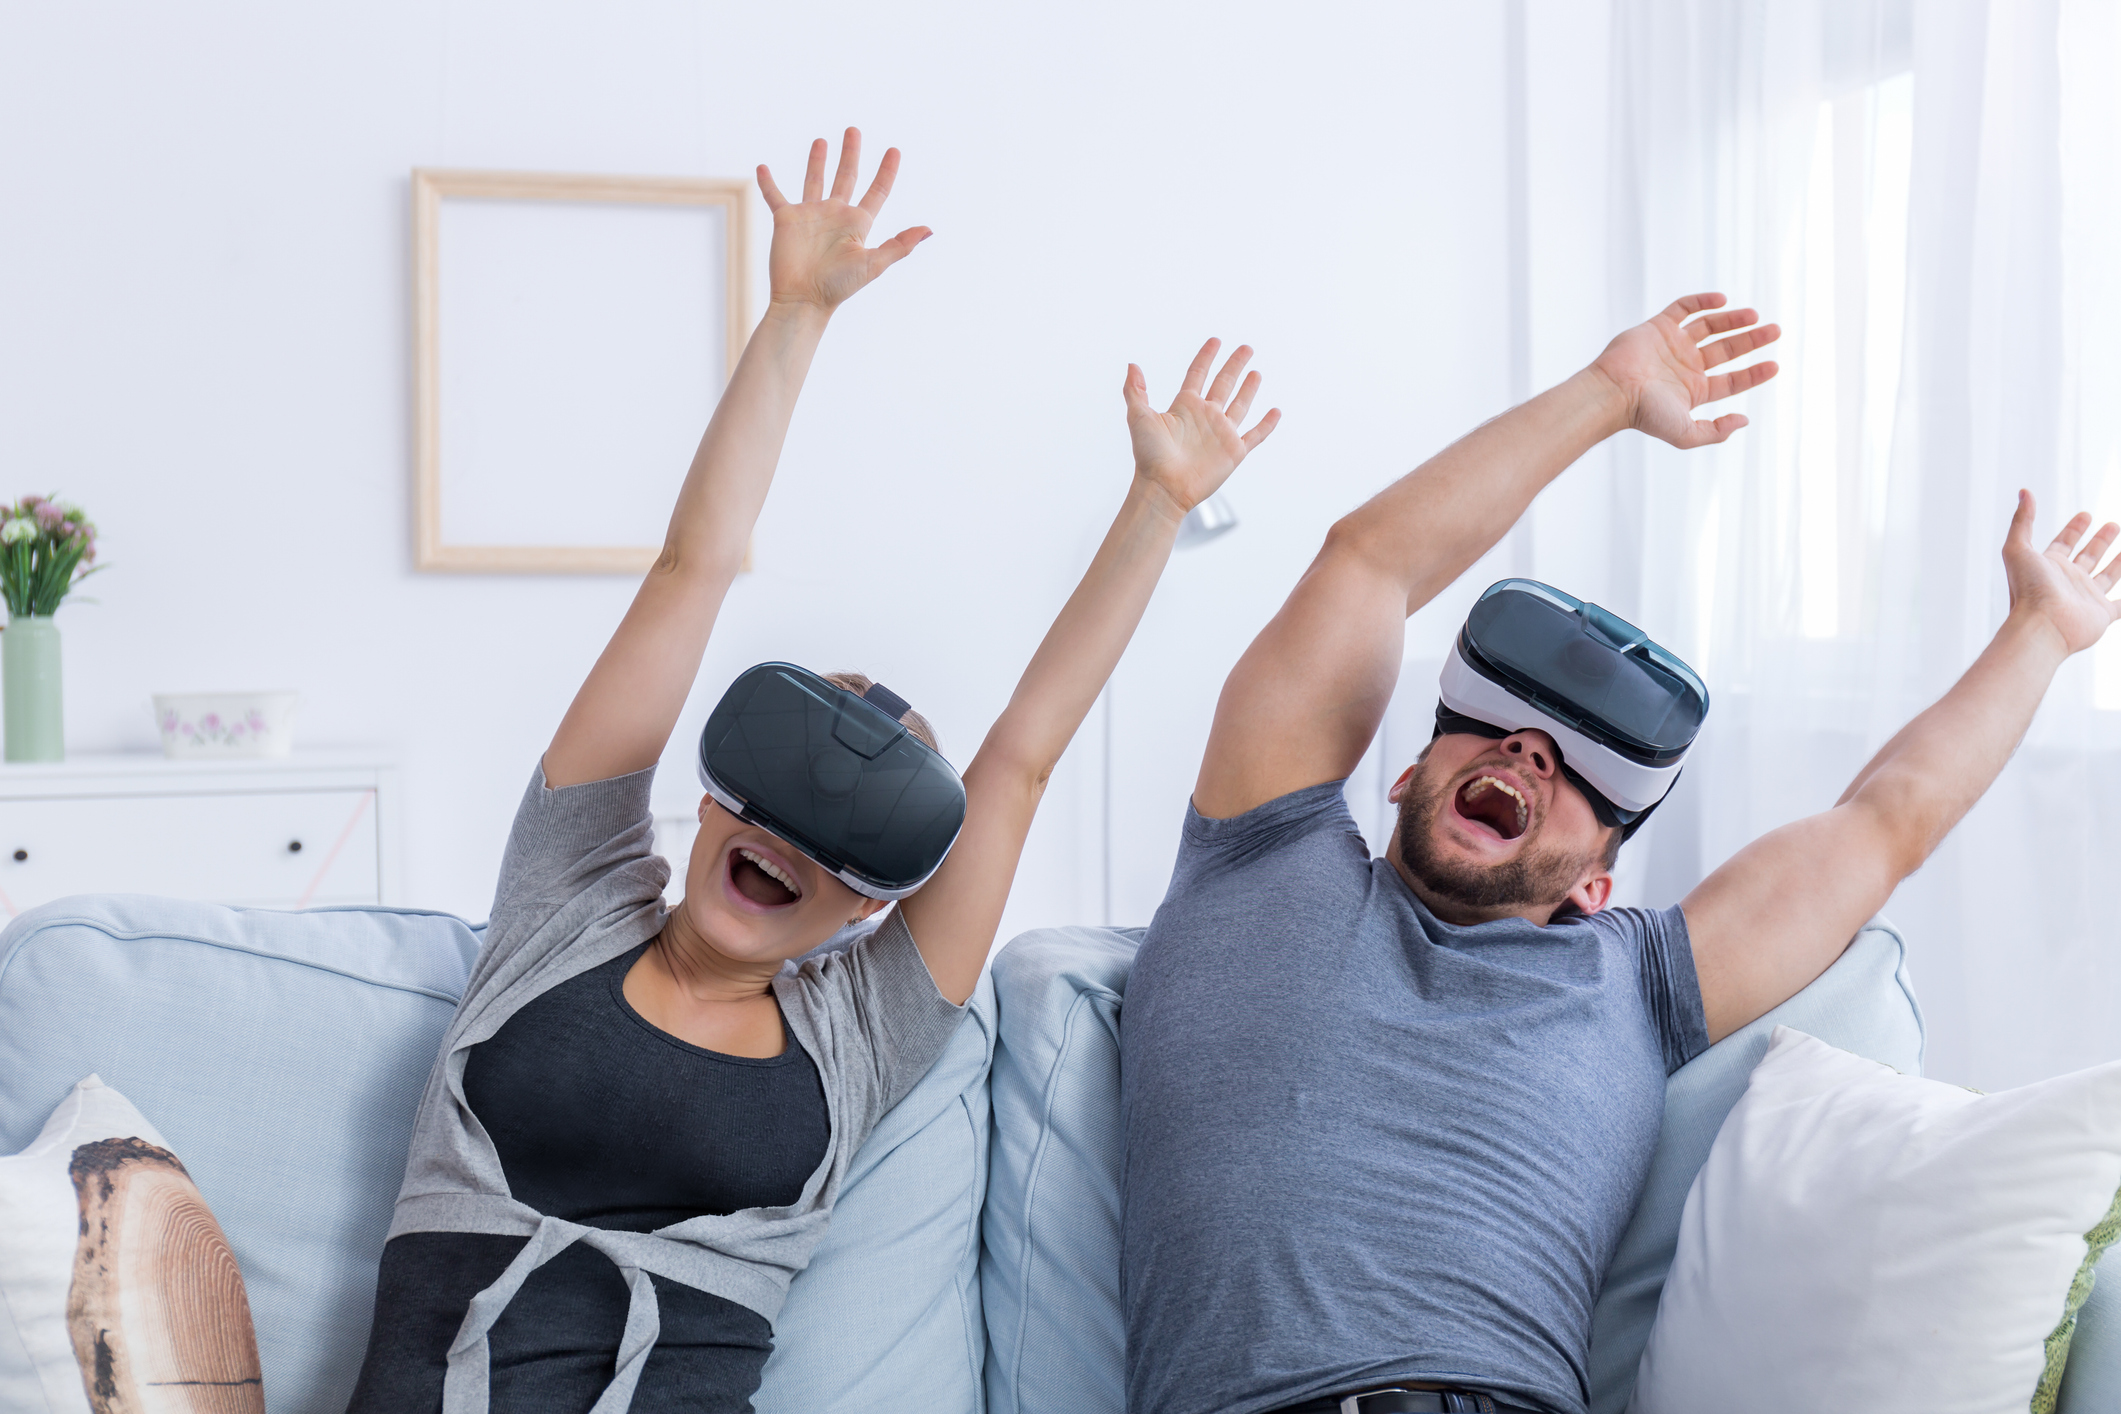 couple enjoying an online roller coaster as a fun virtual experience